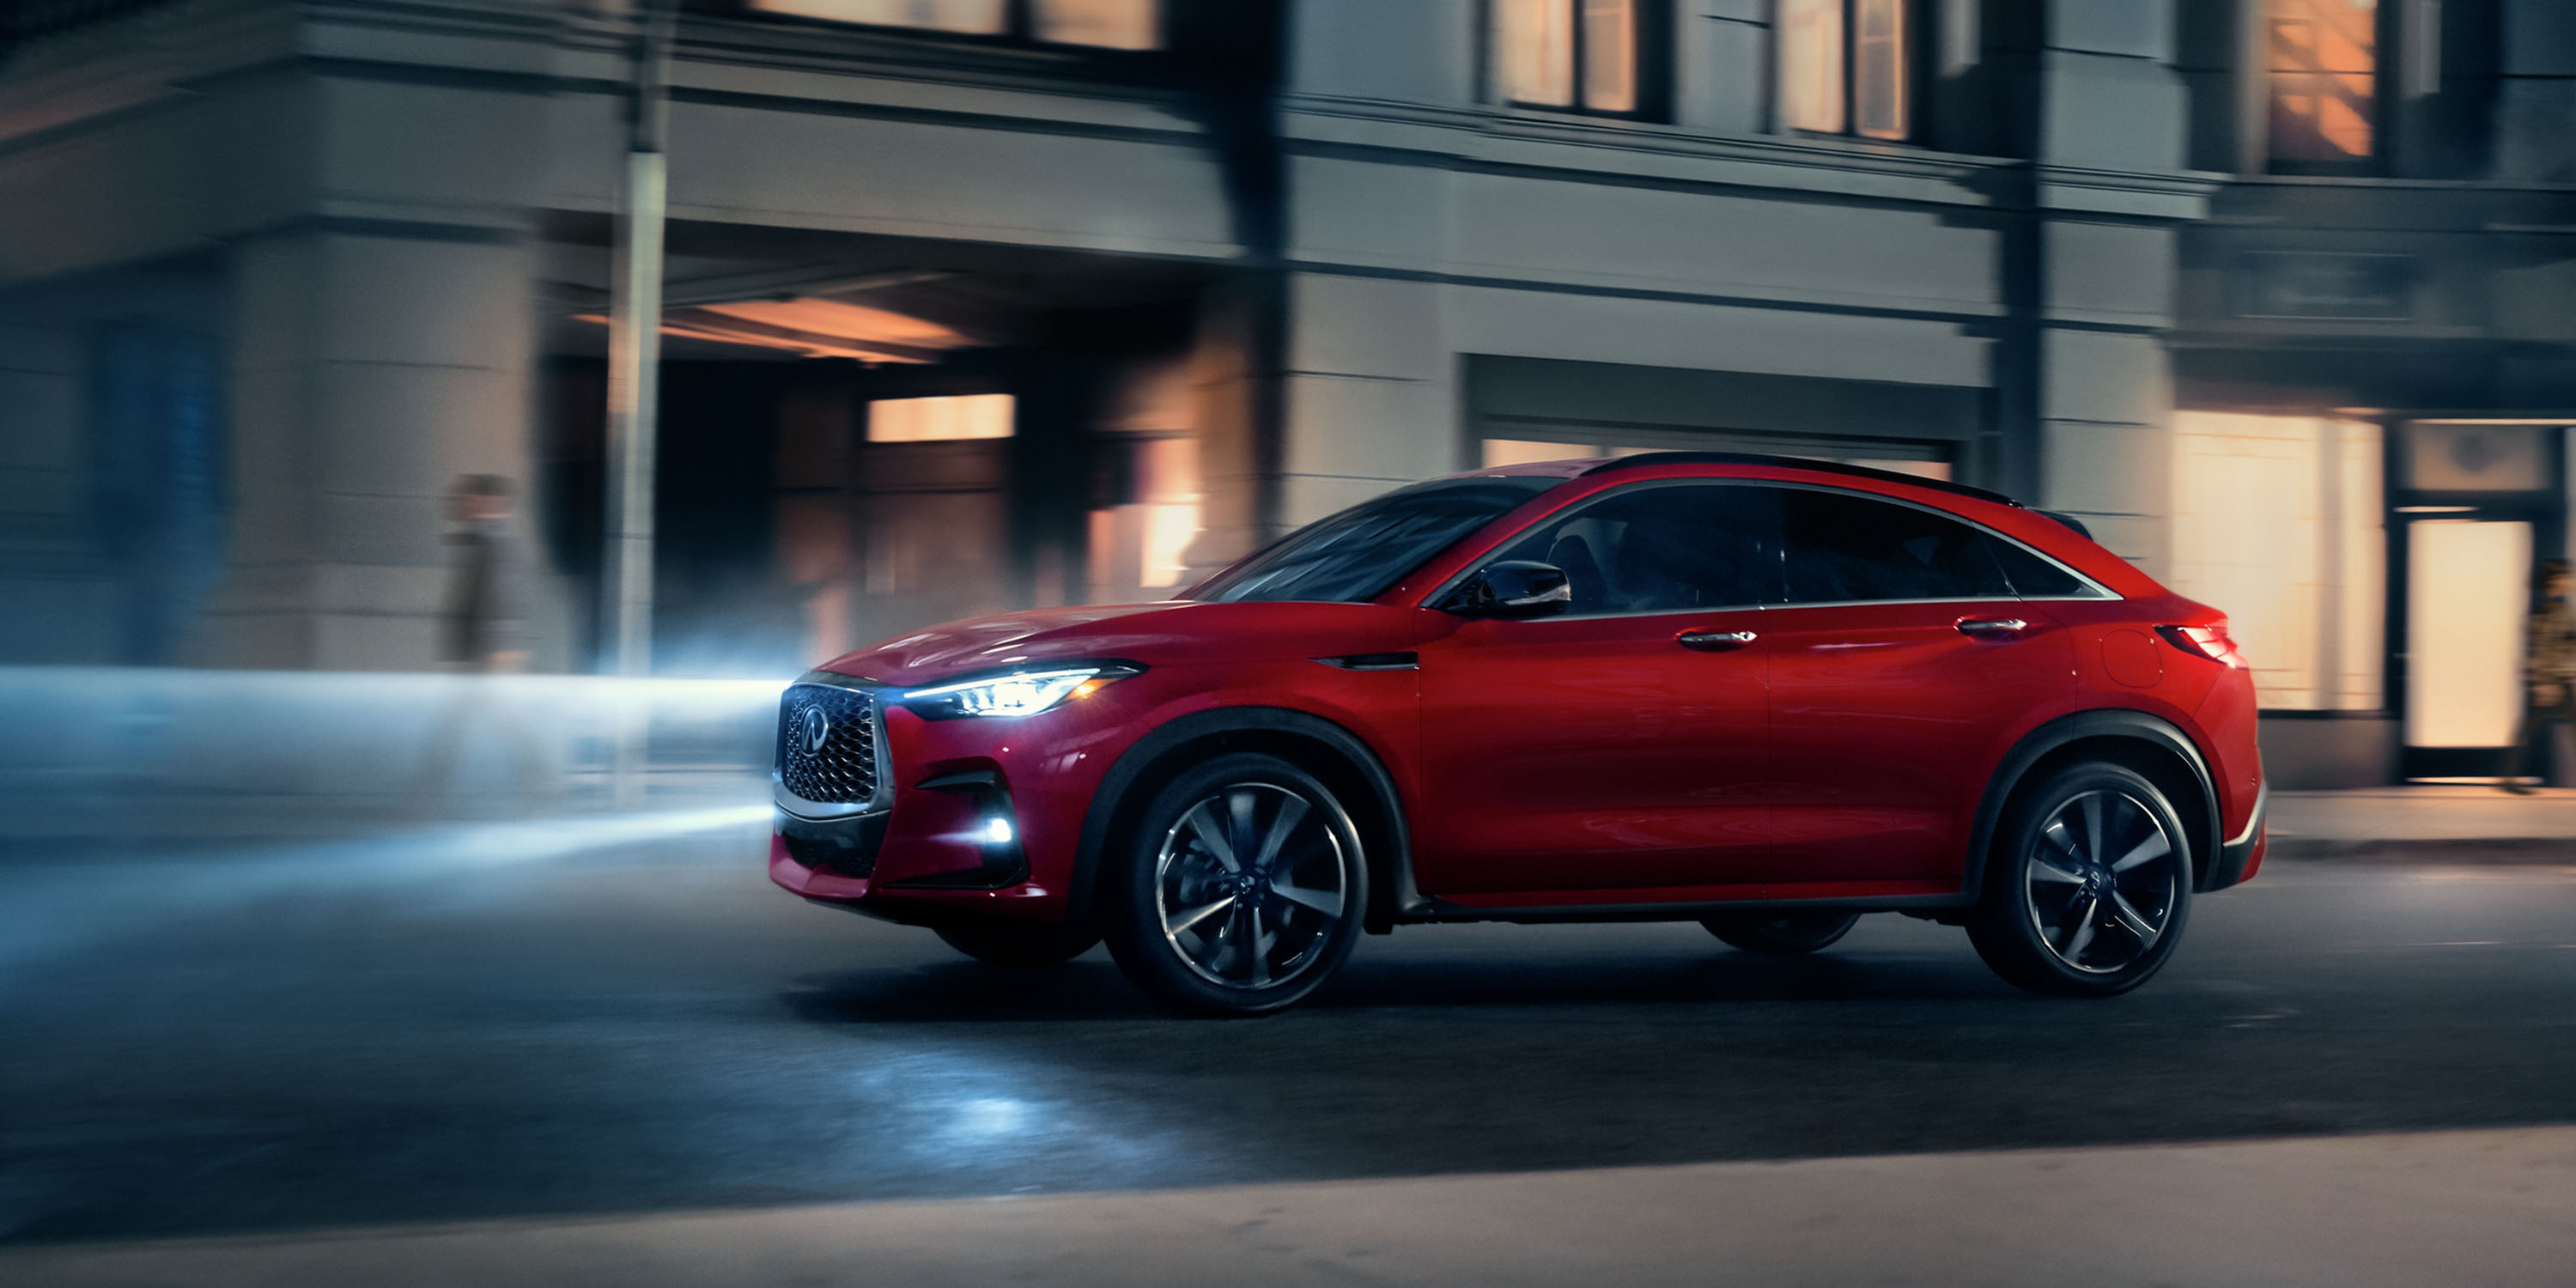 2022 INFINITI QX55 Crossover Coupe